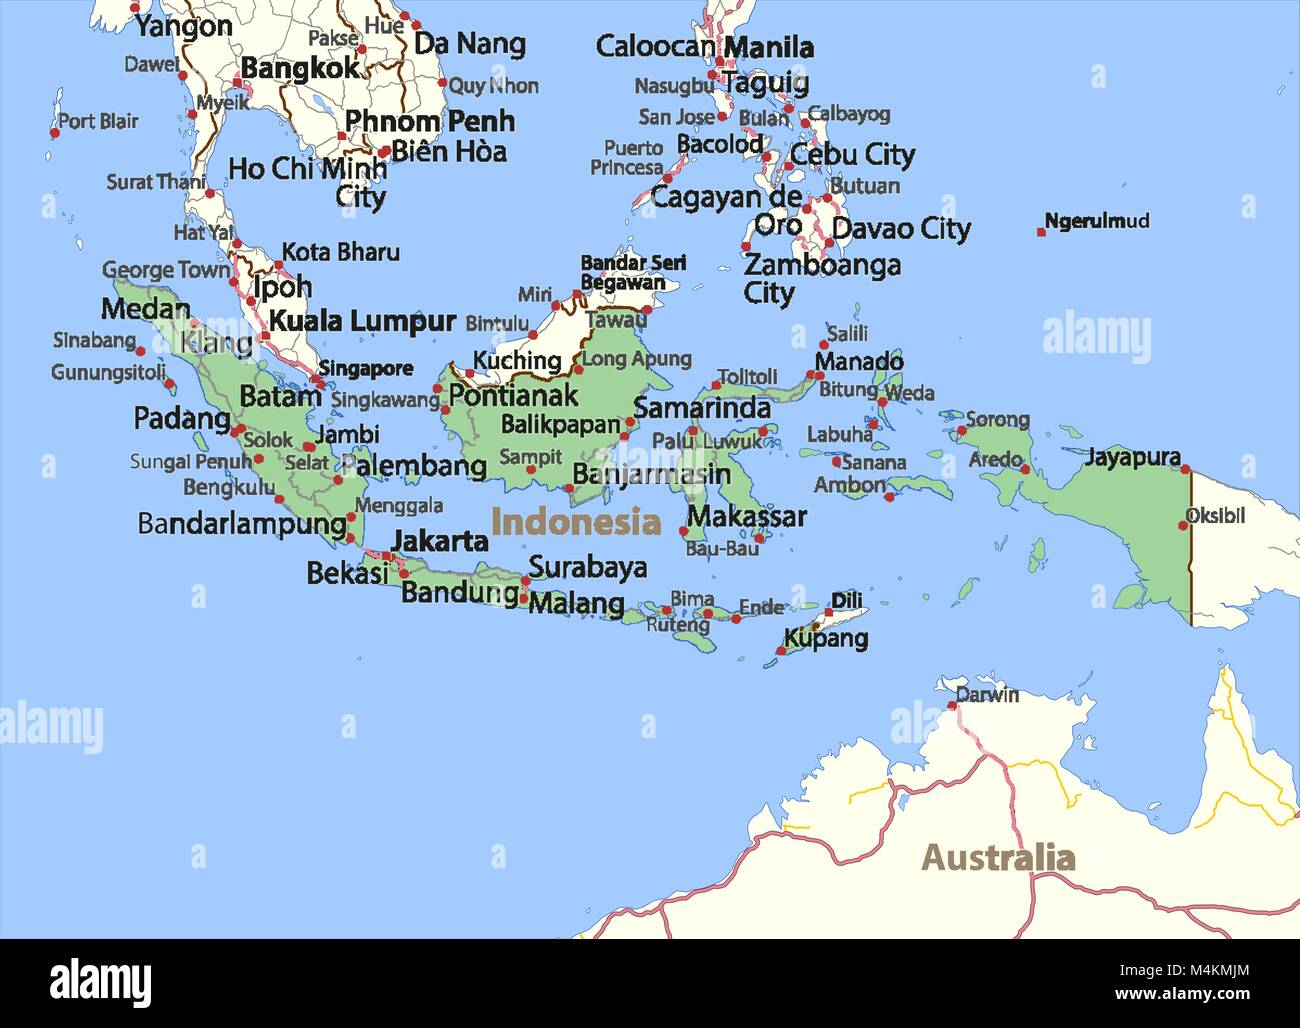 Map of indonesia stock photos map of indonesia stock images alamy map of indonesia shows country borders place names and roads labels in english gumiabroncs Choice Image